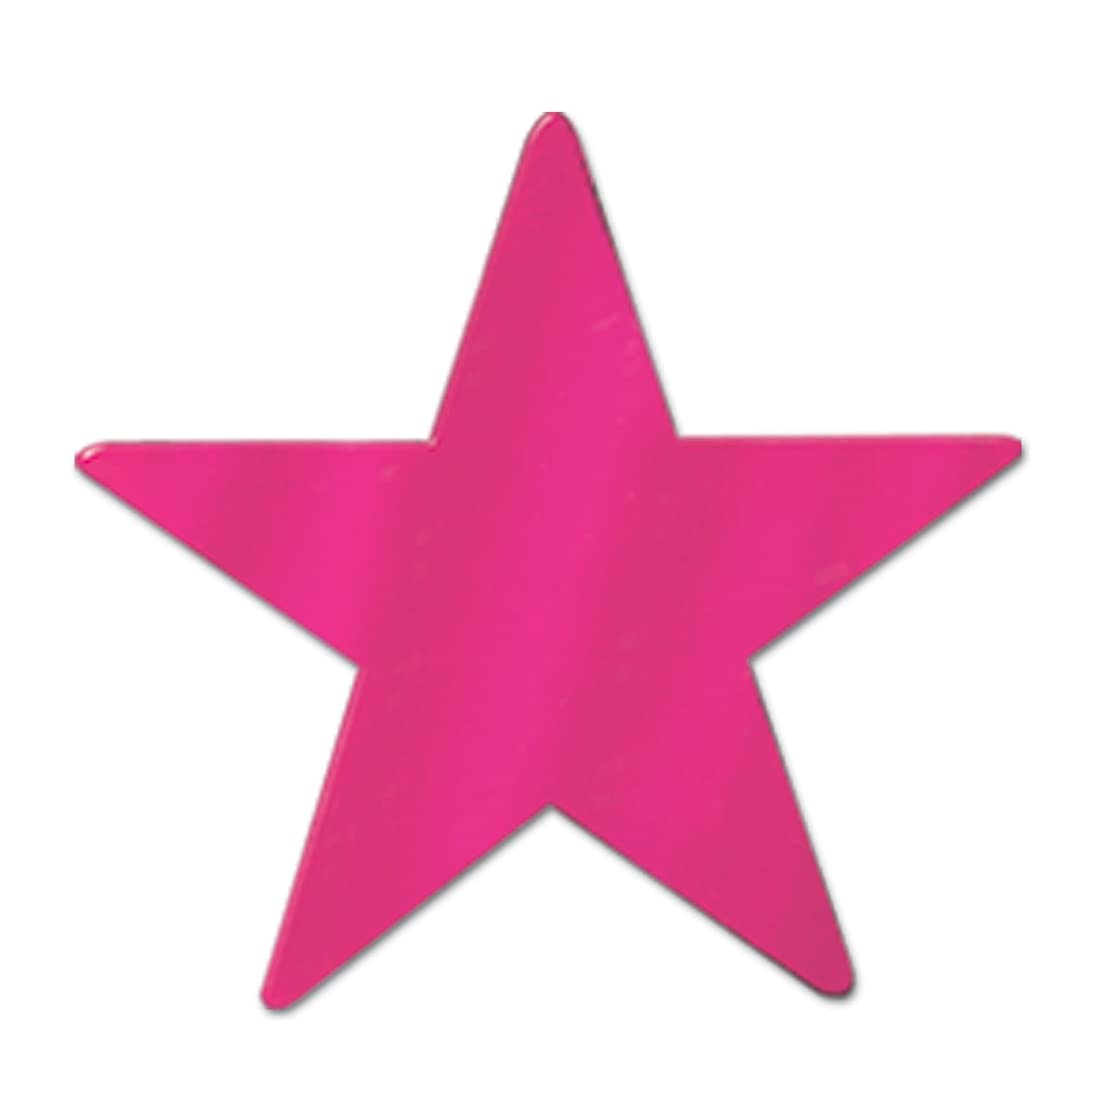 Beistle 57027-C Cerise Metallic Star Cutouts, 3-1/2 Inch, 12 Pieces Per Package